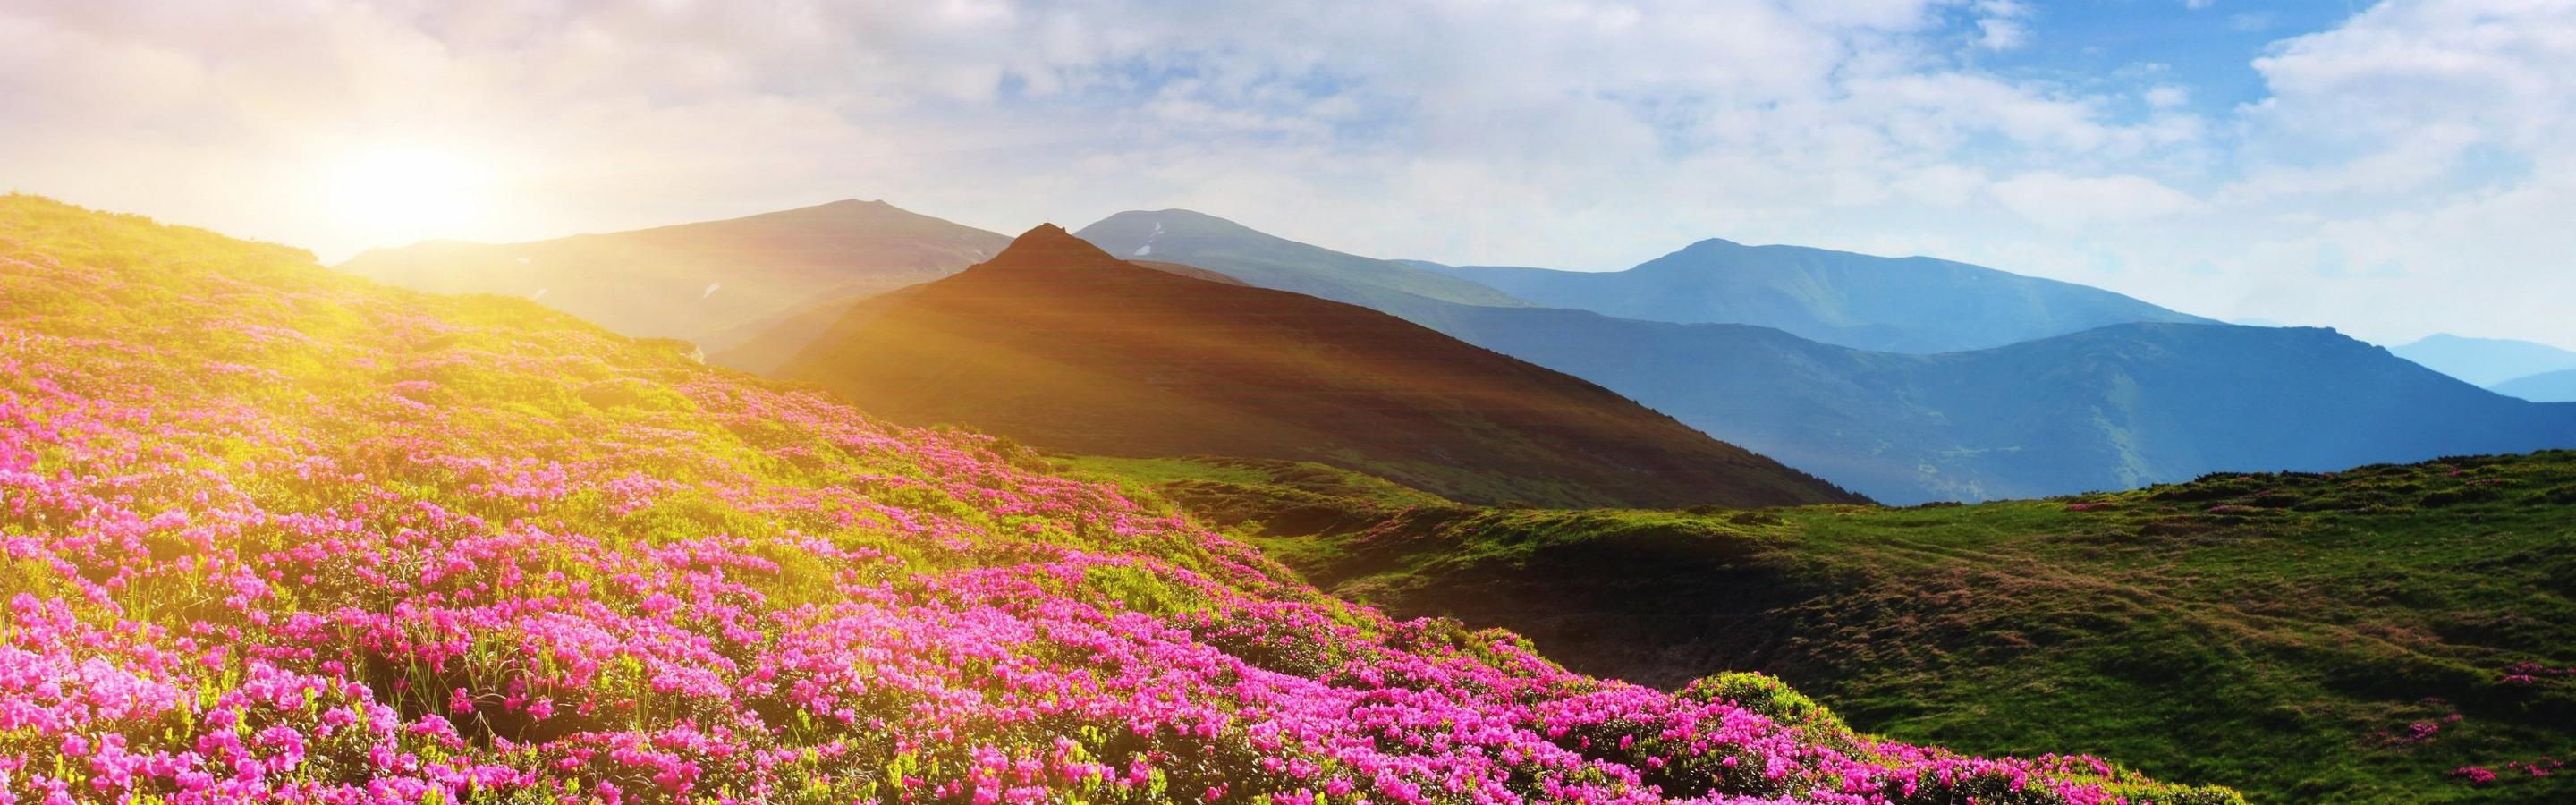 Beautiful Pink Rhododendron Flowers On The Mountain Sun Day